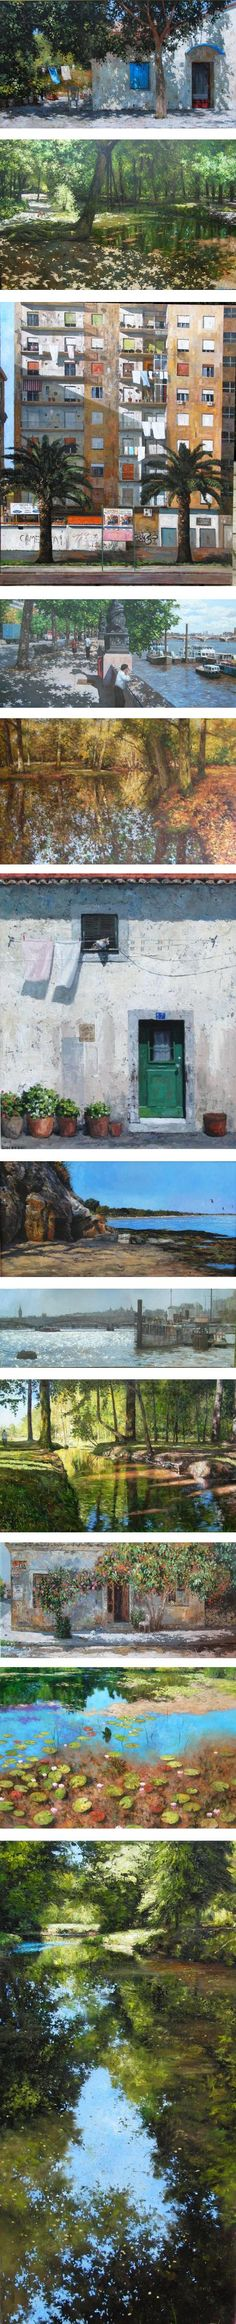 Ian Hargreaves, landscapes, cityscapes